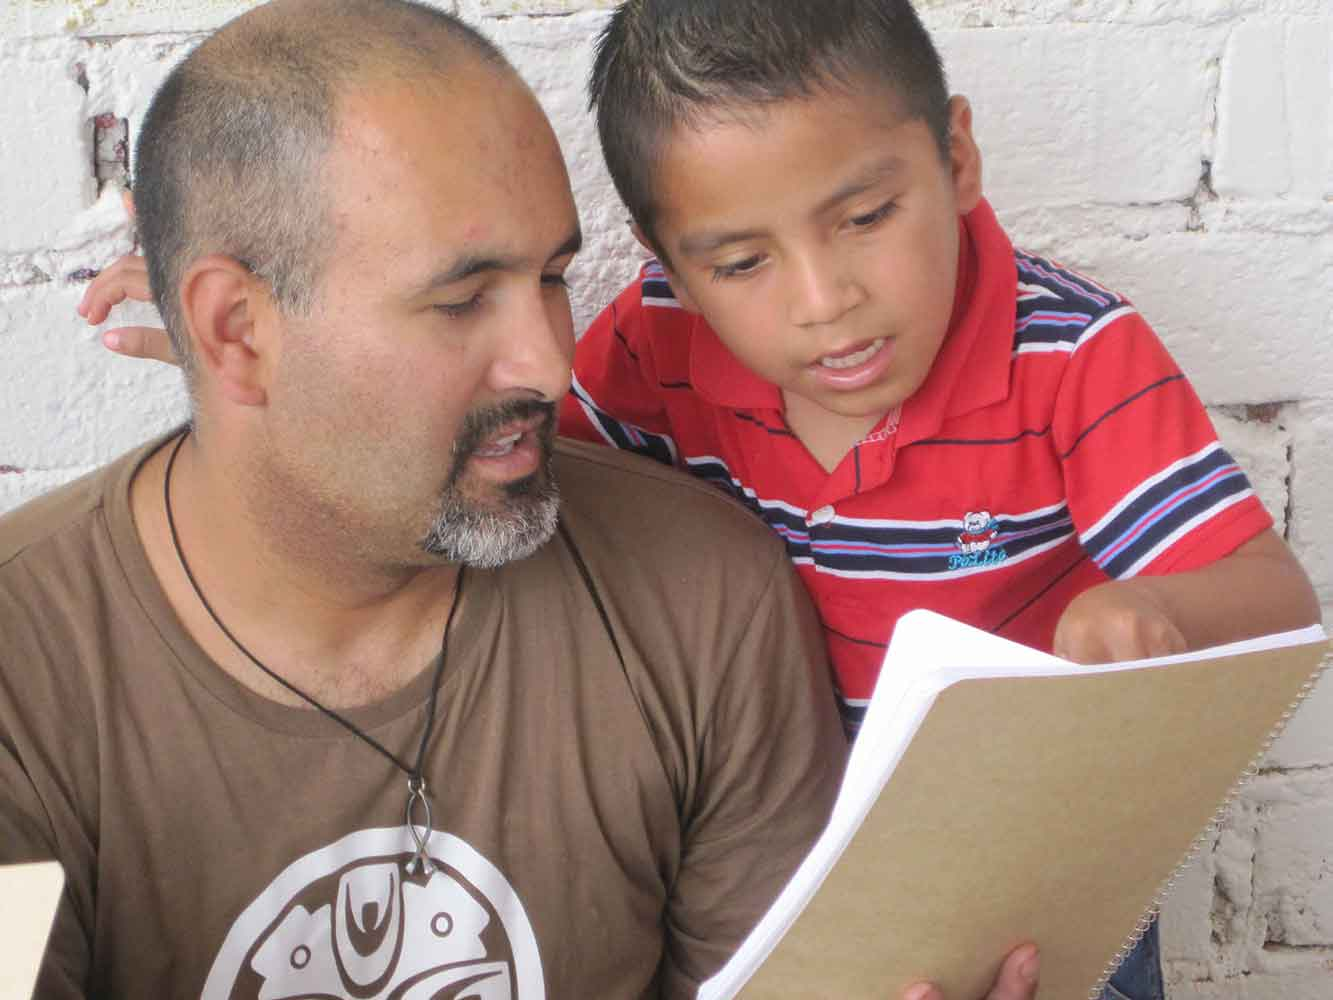 A student shows a page from his notebook to his son